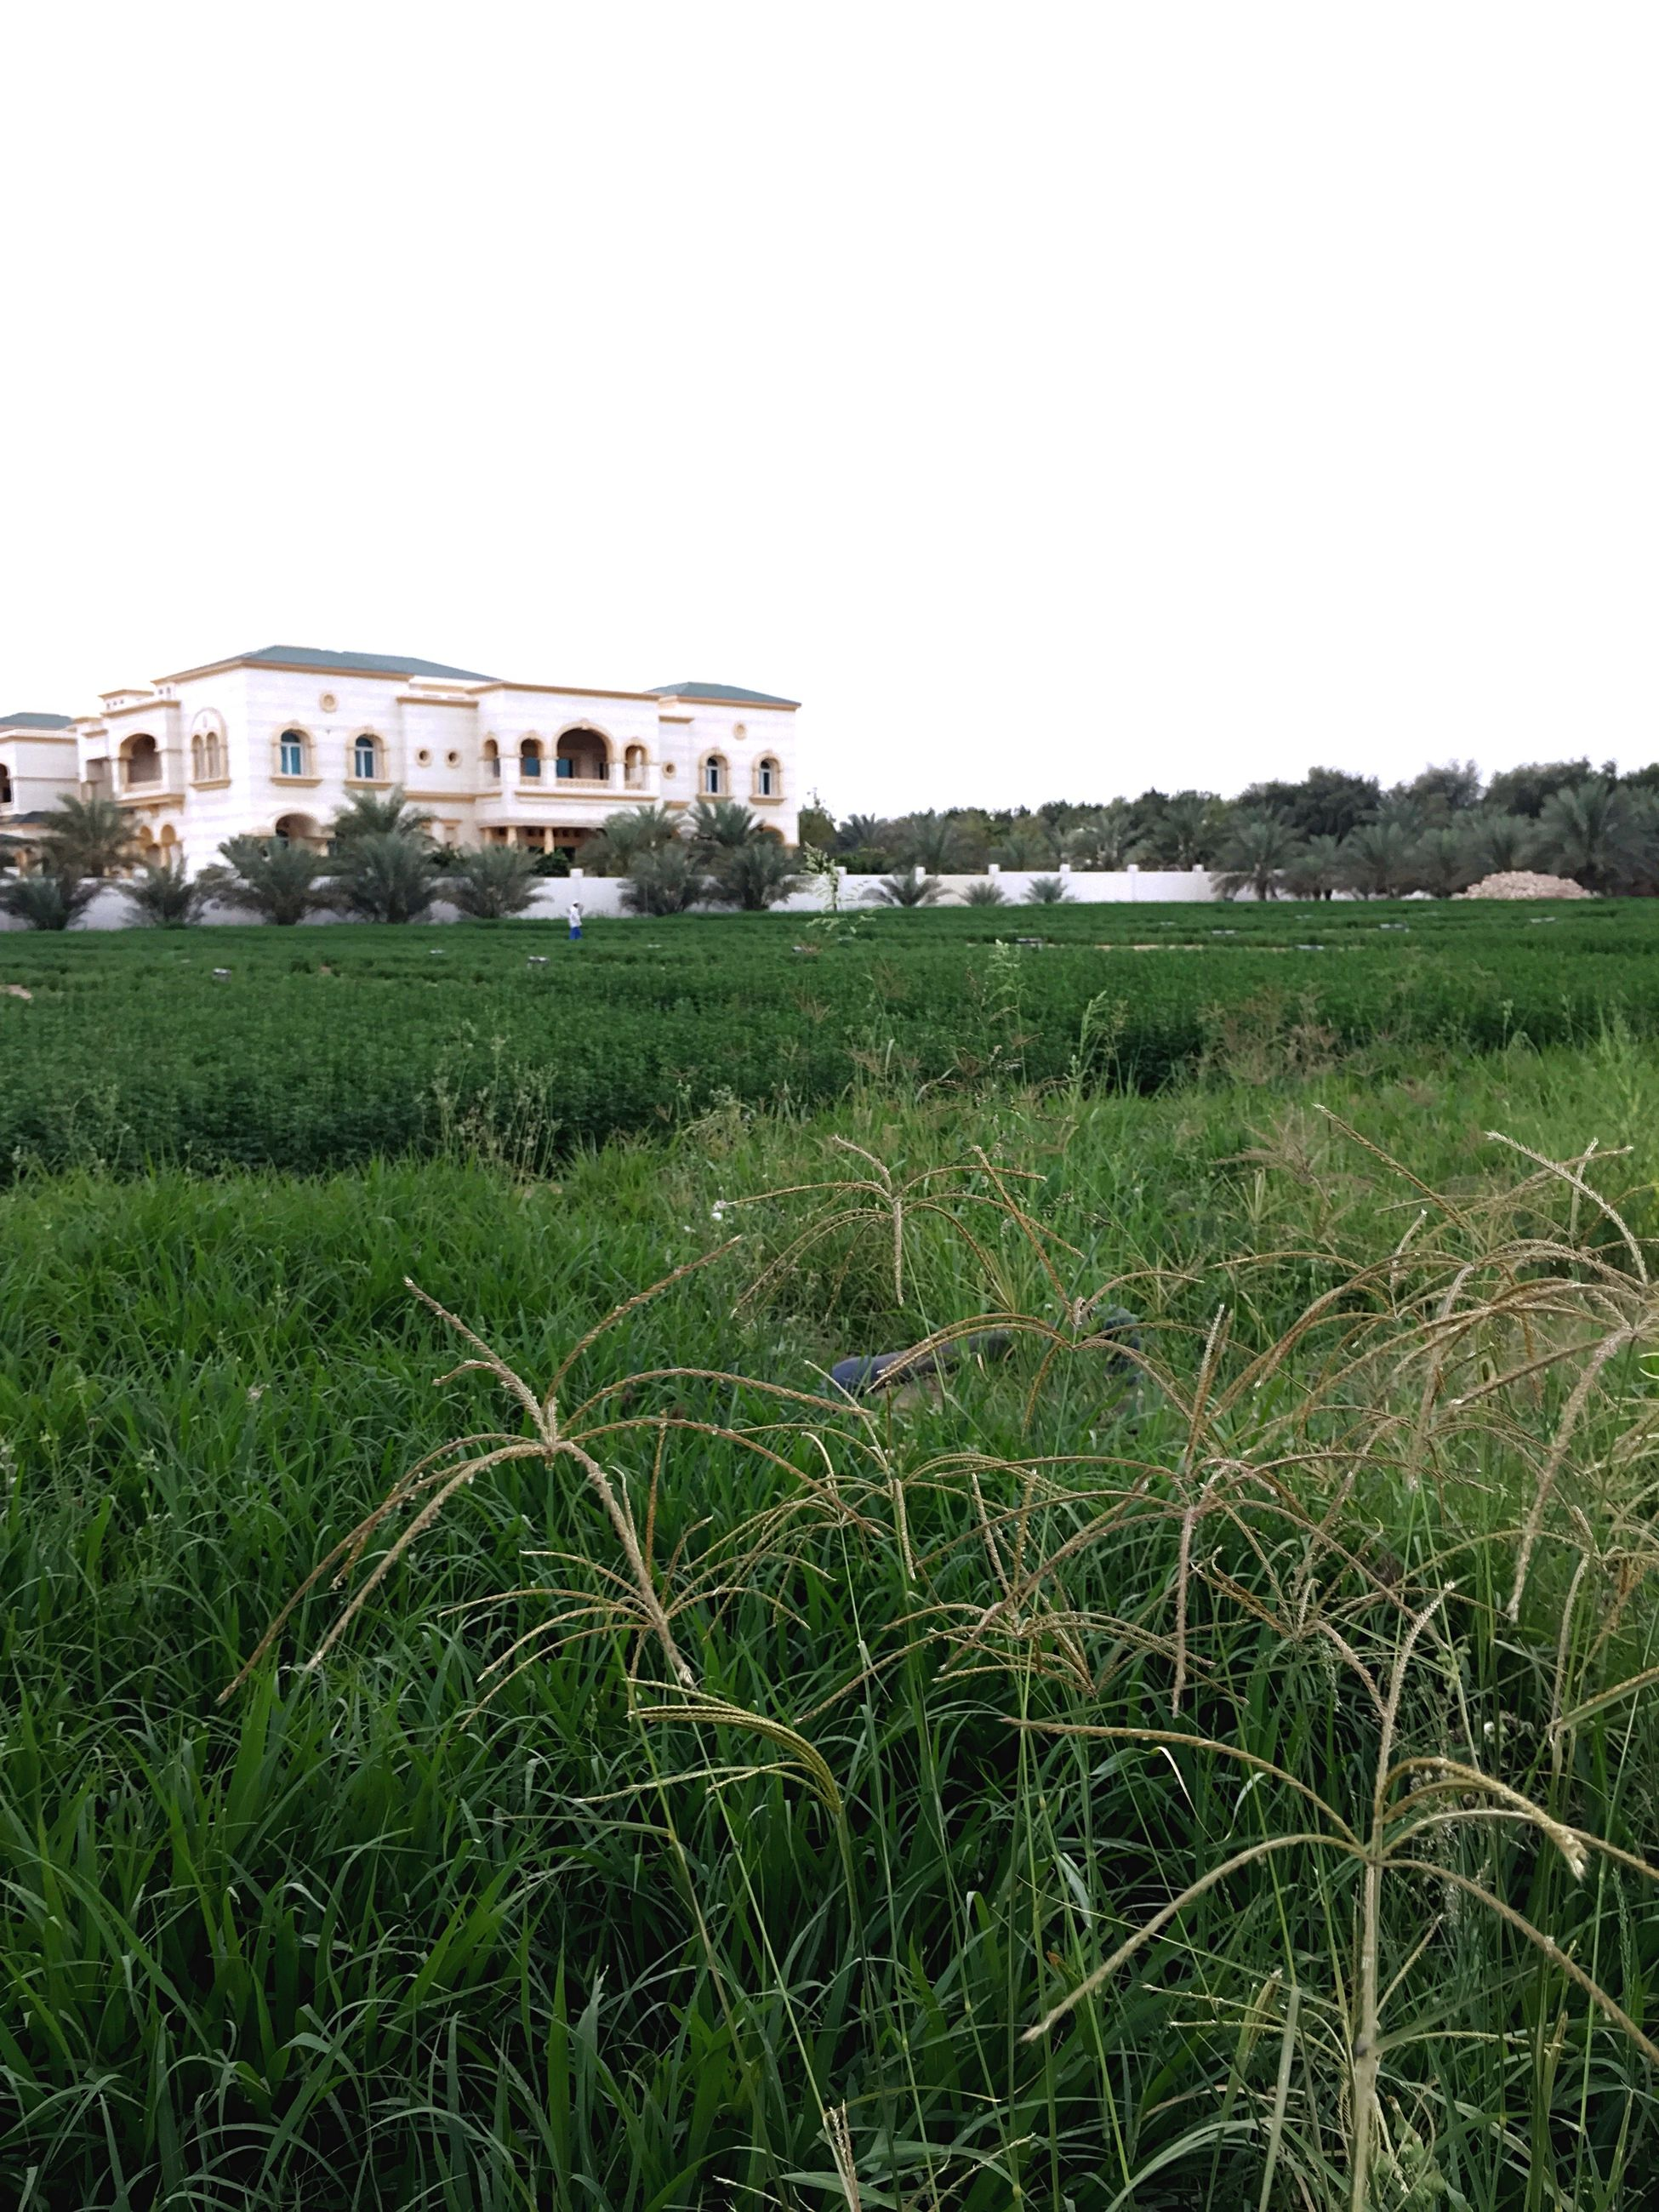 grass, clear sky, building exterior, architecture, built structure, field, green color, grassy, copy space, growth, house, plant, nature, day, outdoors, sky, no people, tranquility, residential structure, landscape